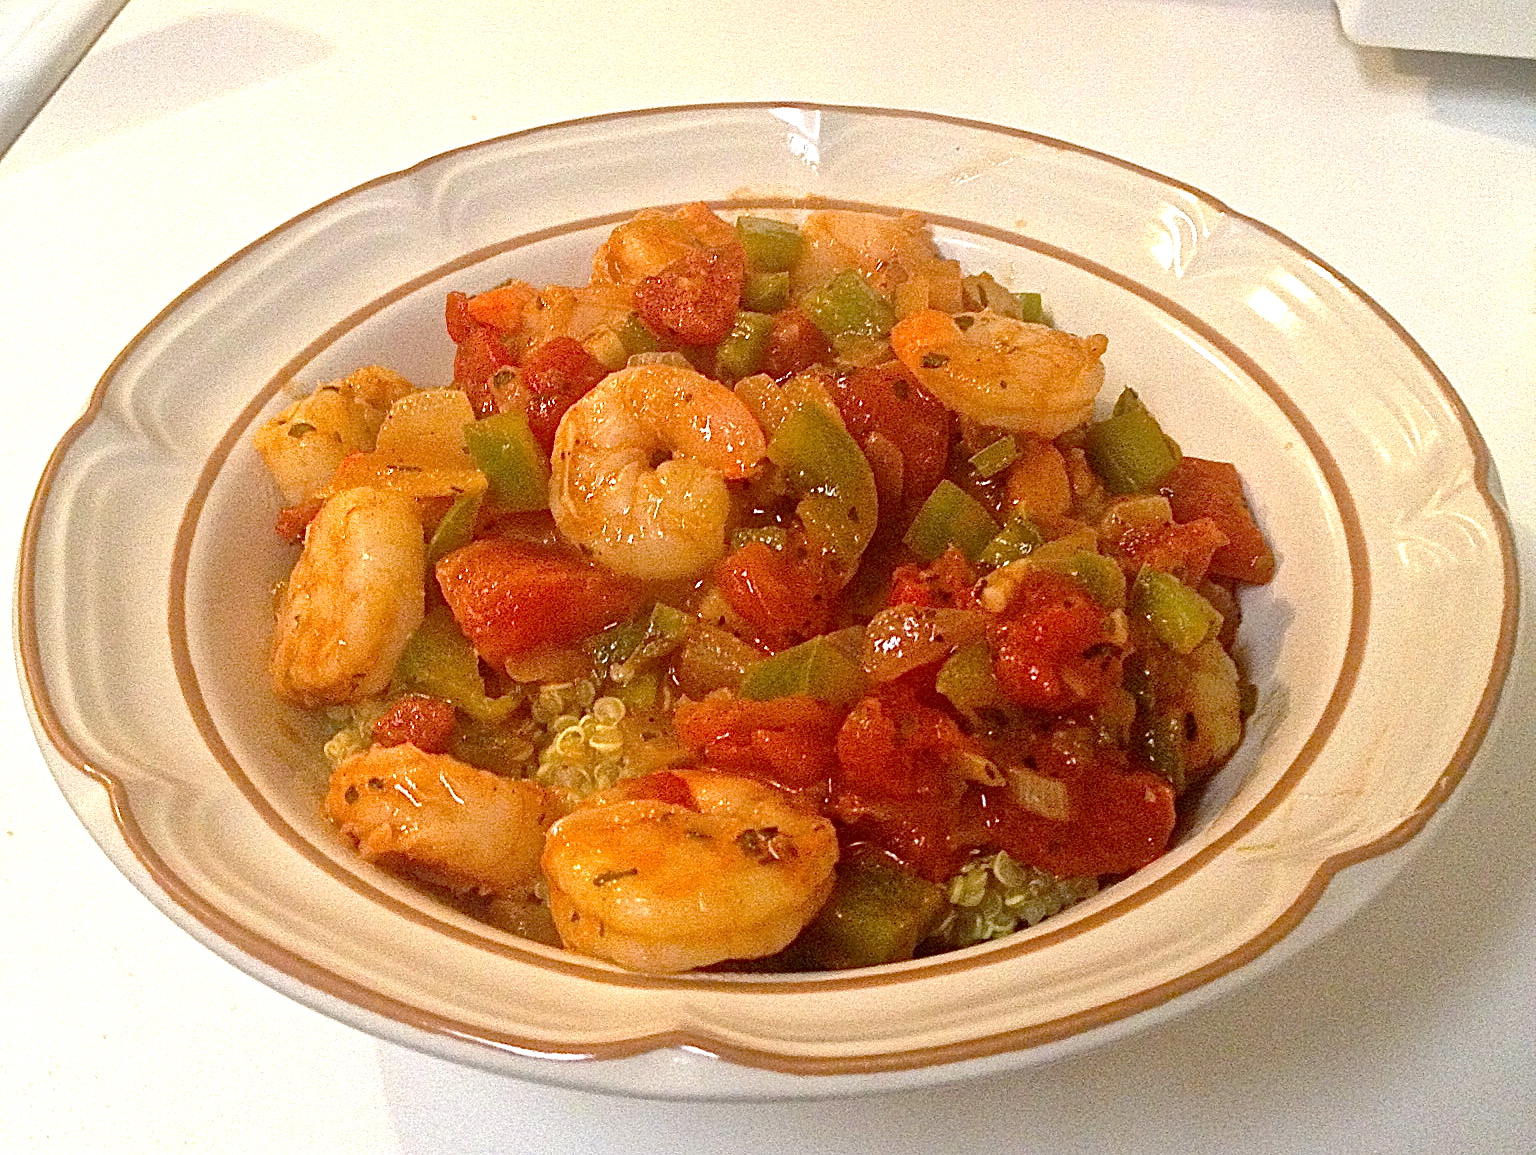 cooking shrimp essay Add wine, turn to medium heat& reduce for 5 minutes (alcohol smell will be gone) add shrimp till warmed through (start to curl up)  top shrimp recipes healthy.